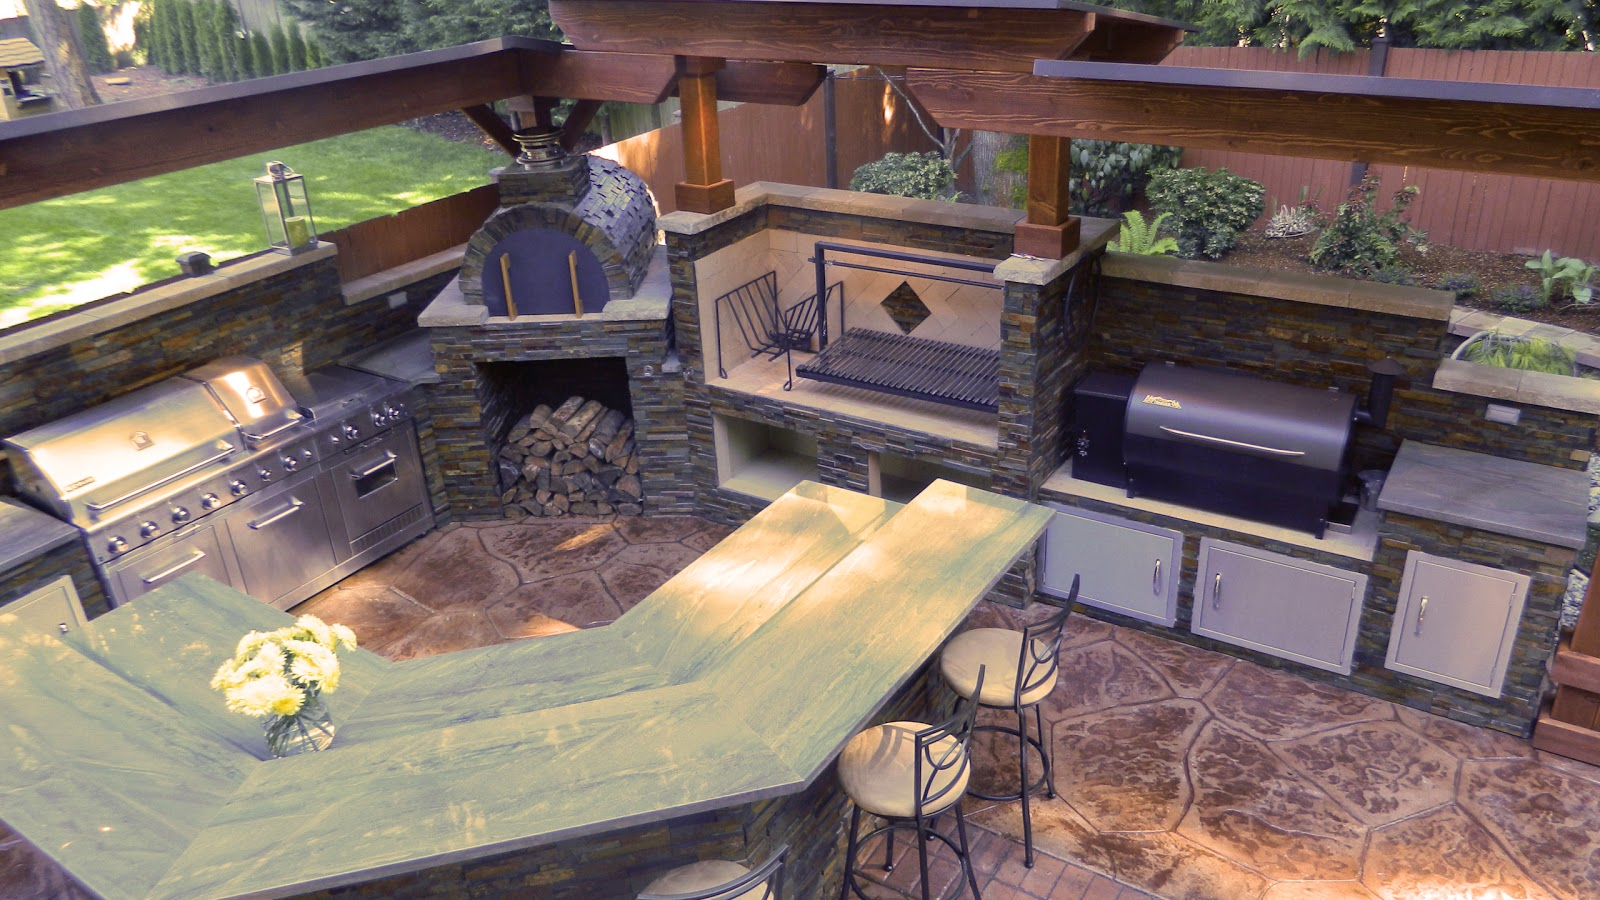 Outdoor Kitchen with Argentinian Grill BrickWood Pizza Oven and Smoker in Kirkland Washington & Outdoor Kitchen with Argentinian Grill BrickWood Pizza Oven and ...